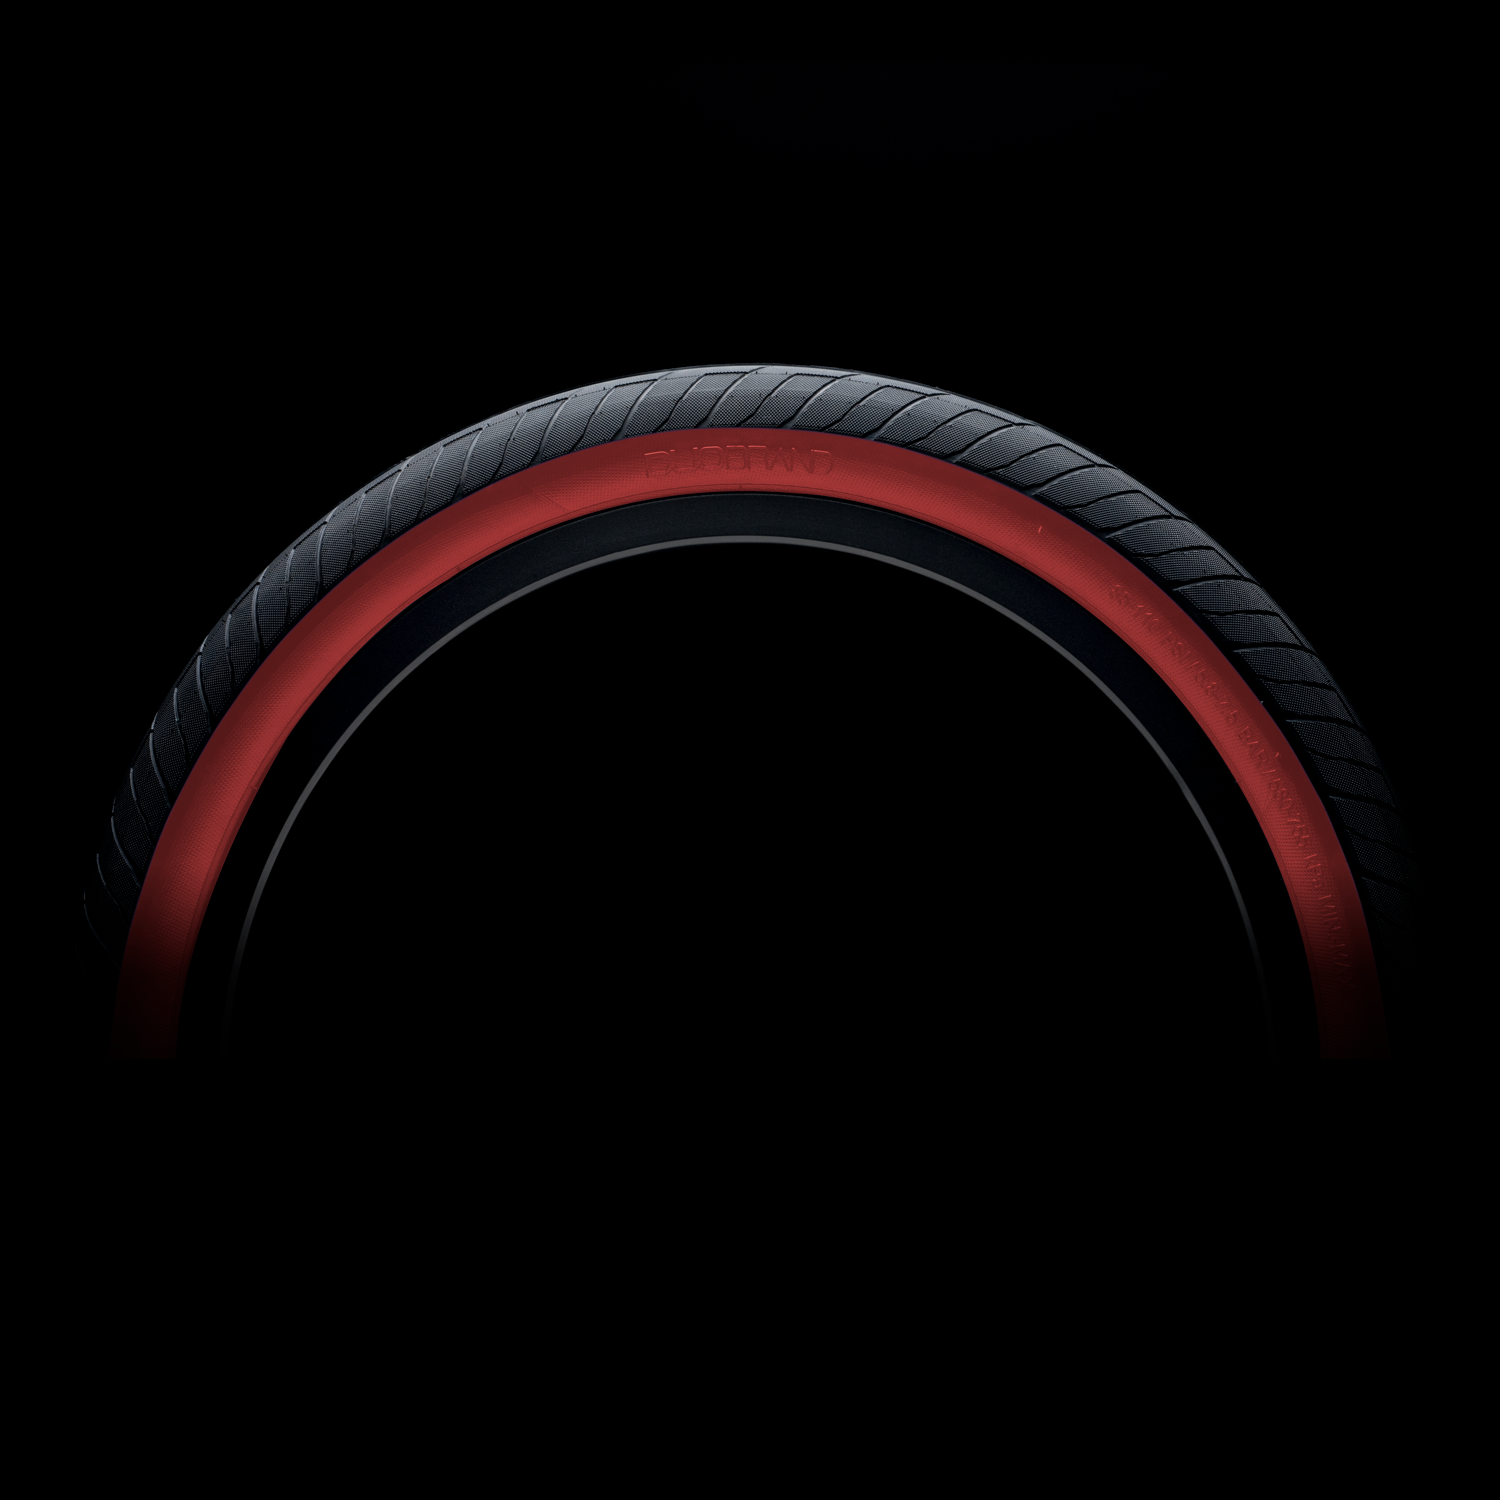 DUO Brand SVS Tire